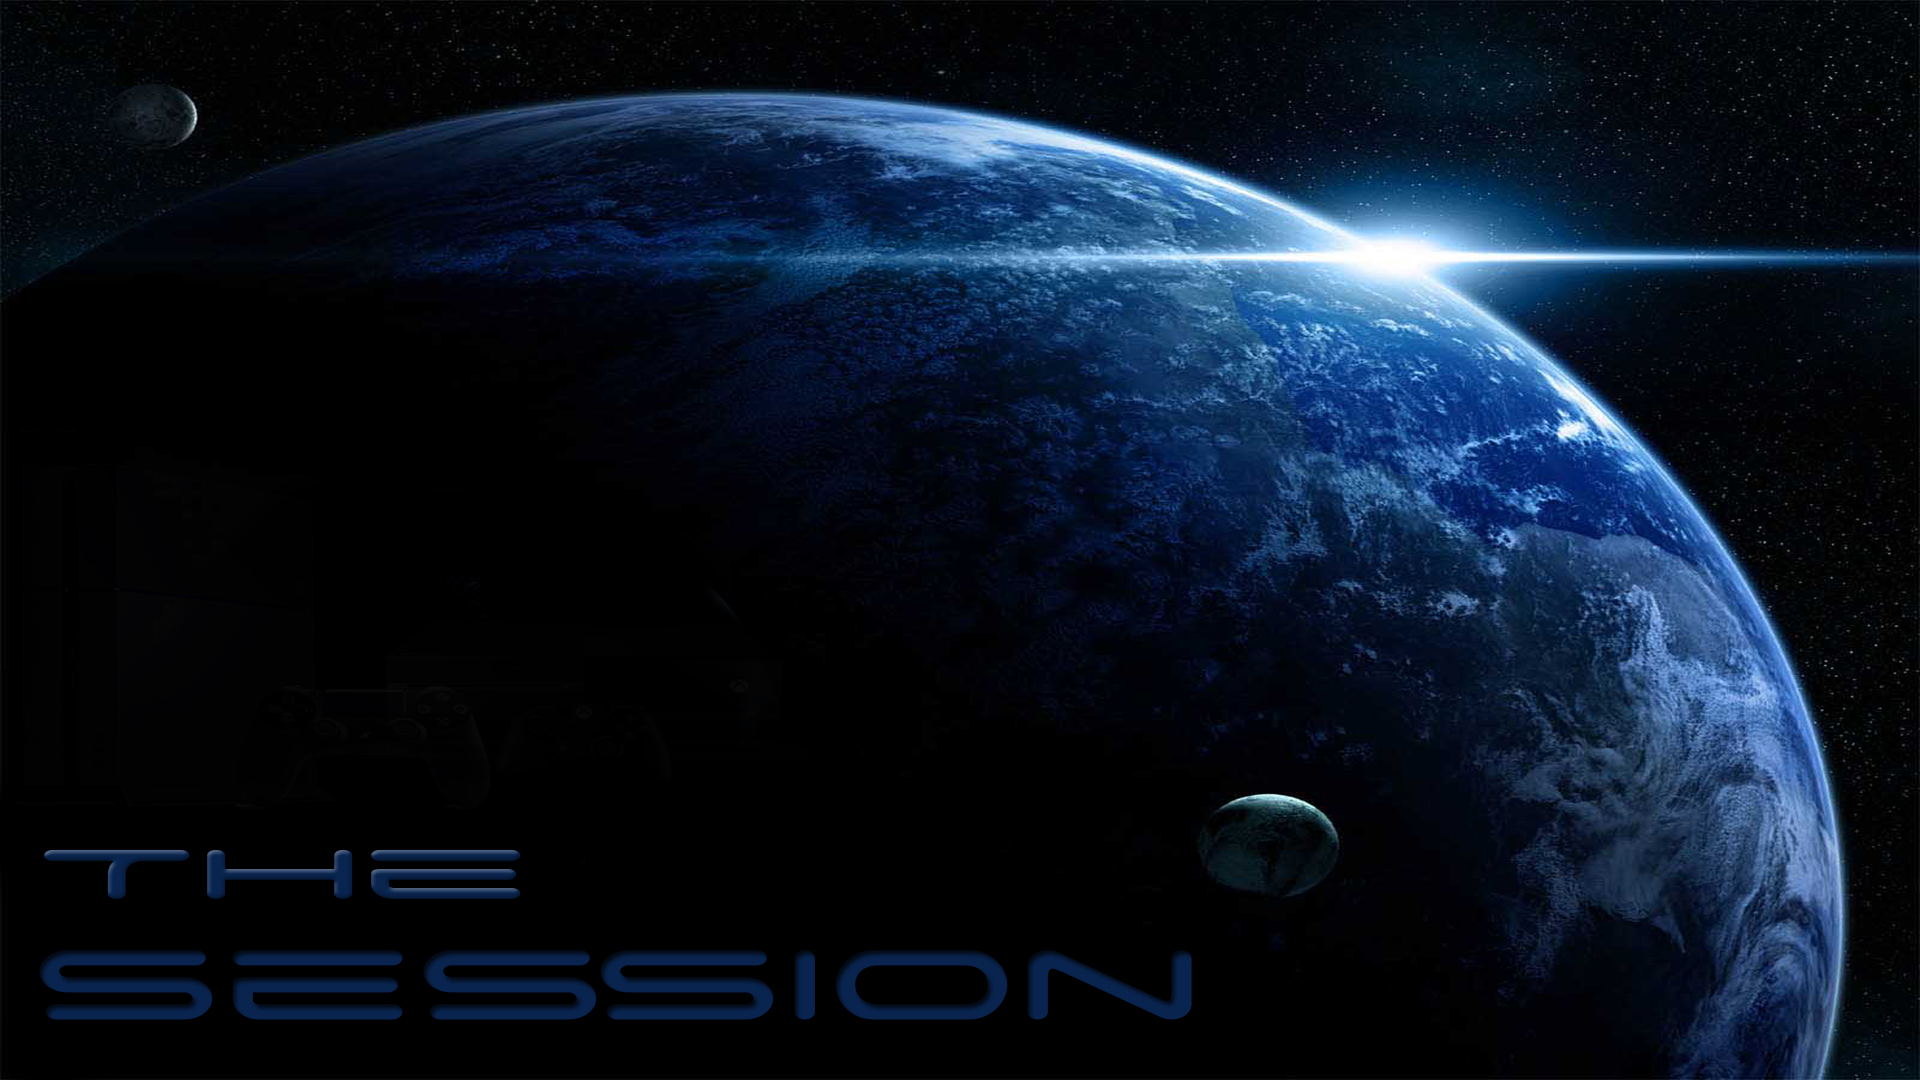 Ace Presents: The Session – What I expect from Next Gen